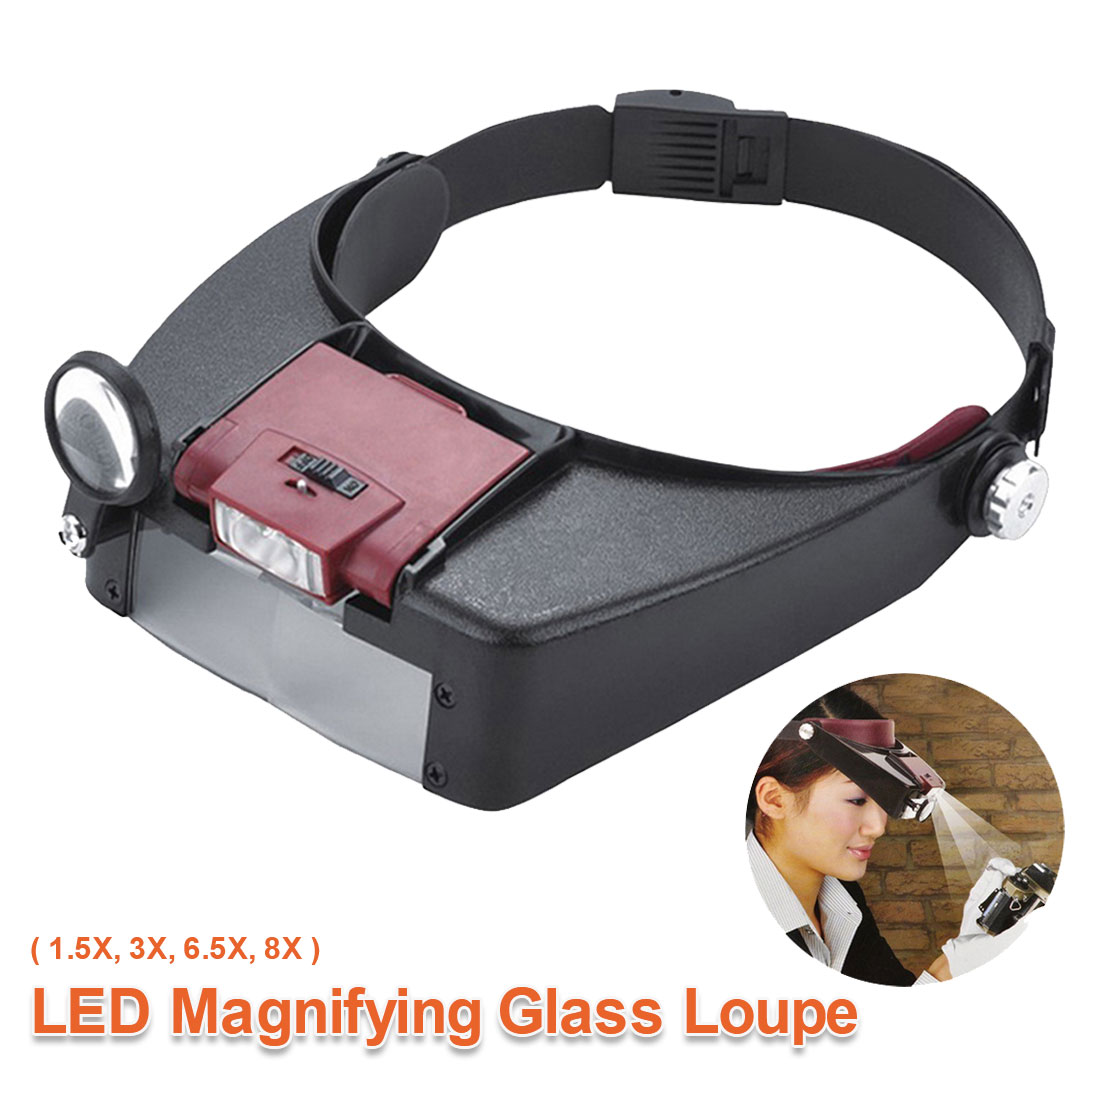 LED Head-mounted Watch Maintenance Magnifying Glasses For Reading Optivisor Magnifying Glass Loupes Jewelry Watch Repair Tool